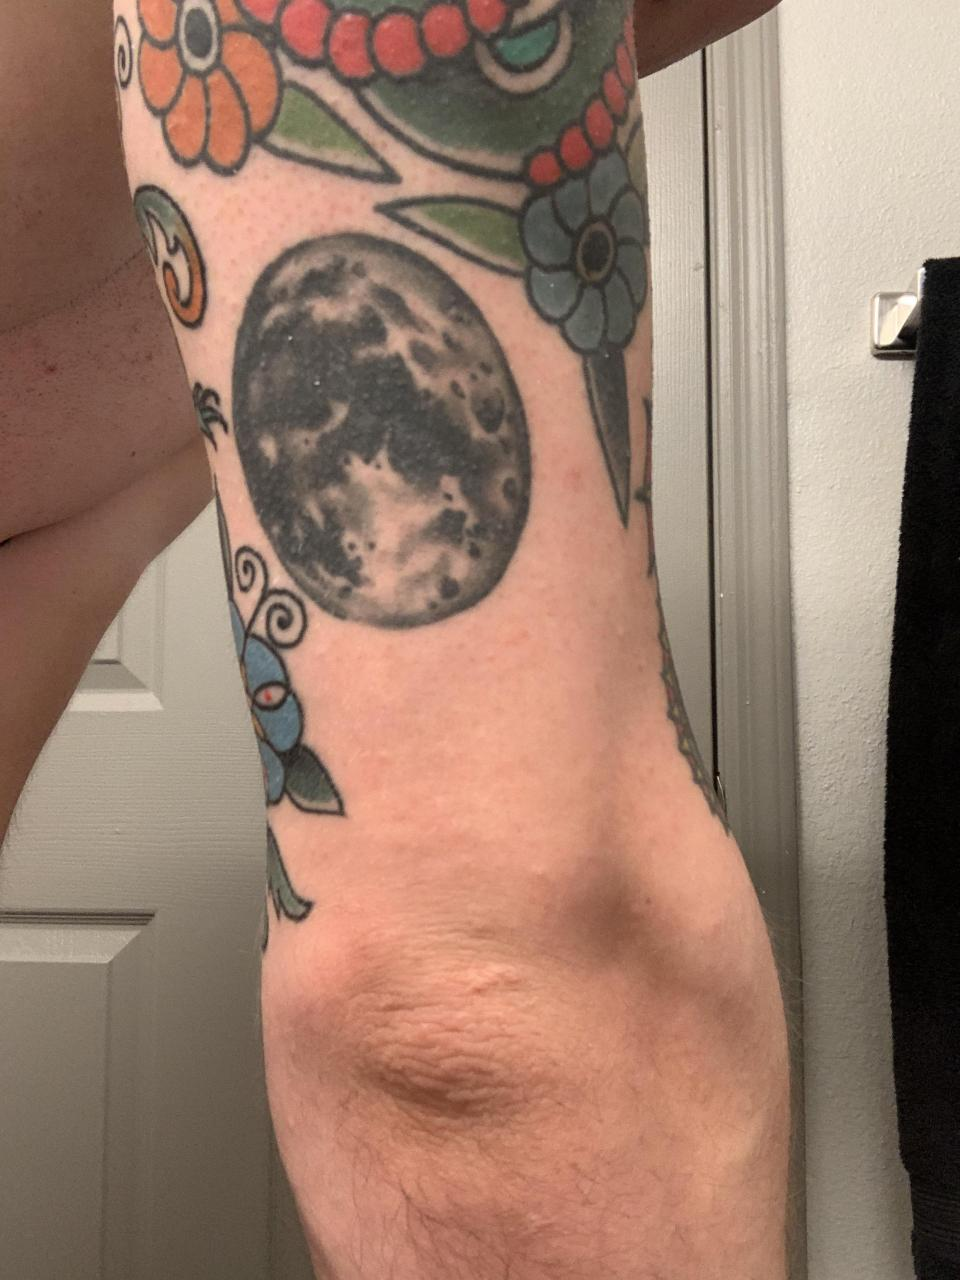 Suggestions for my elbow? Redo/revamp/cover ideas for the moon?